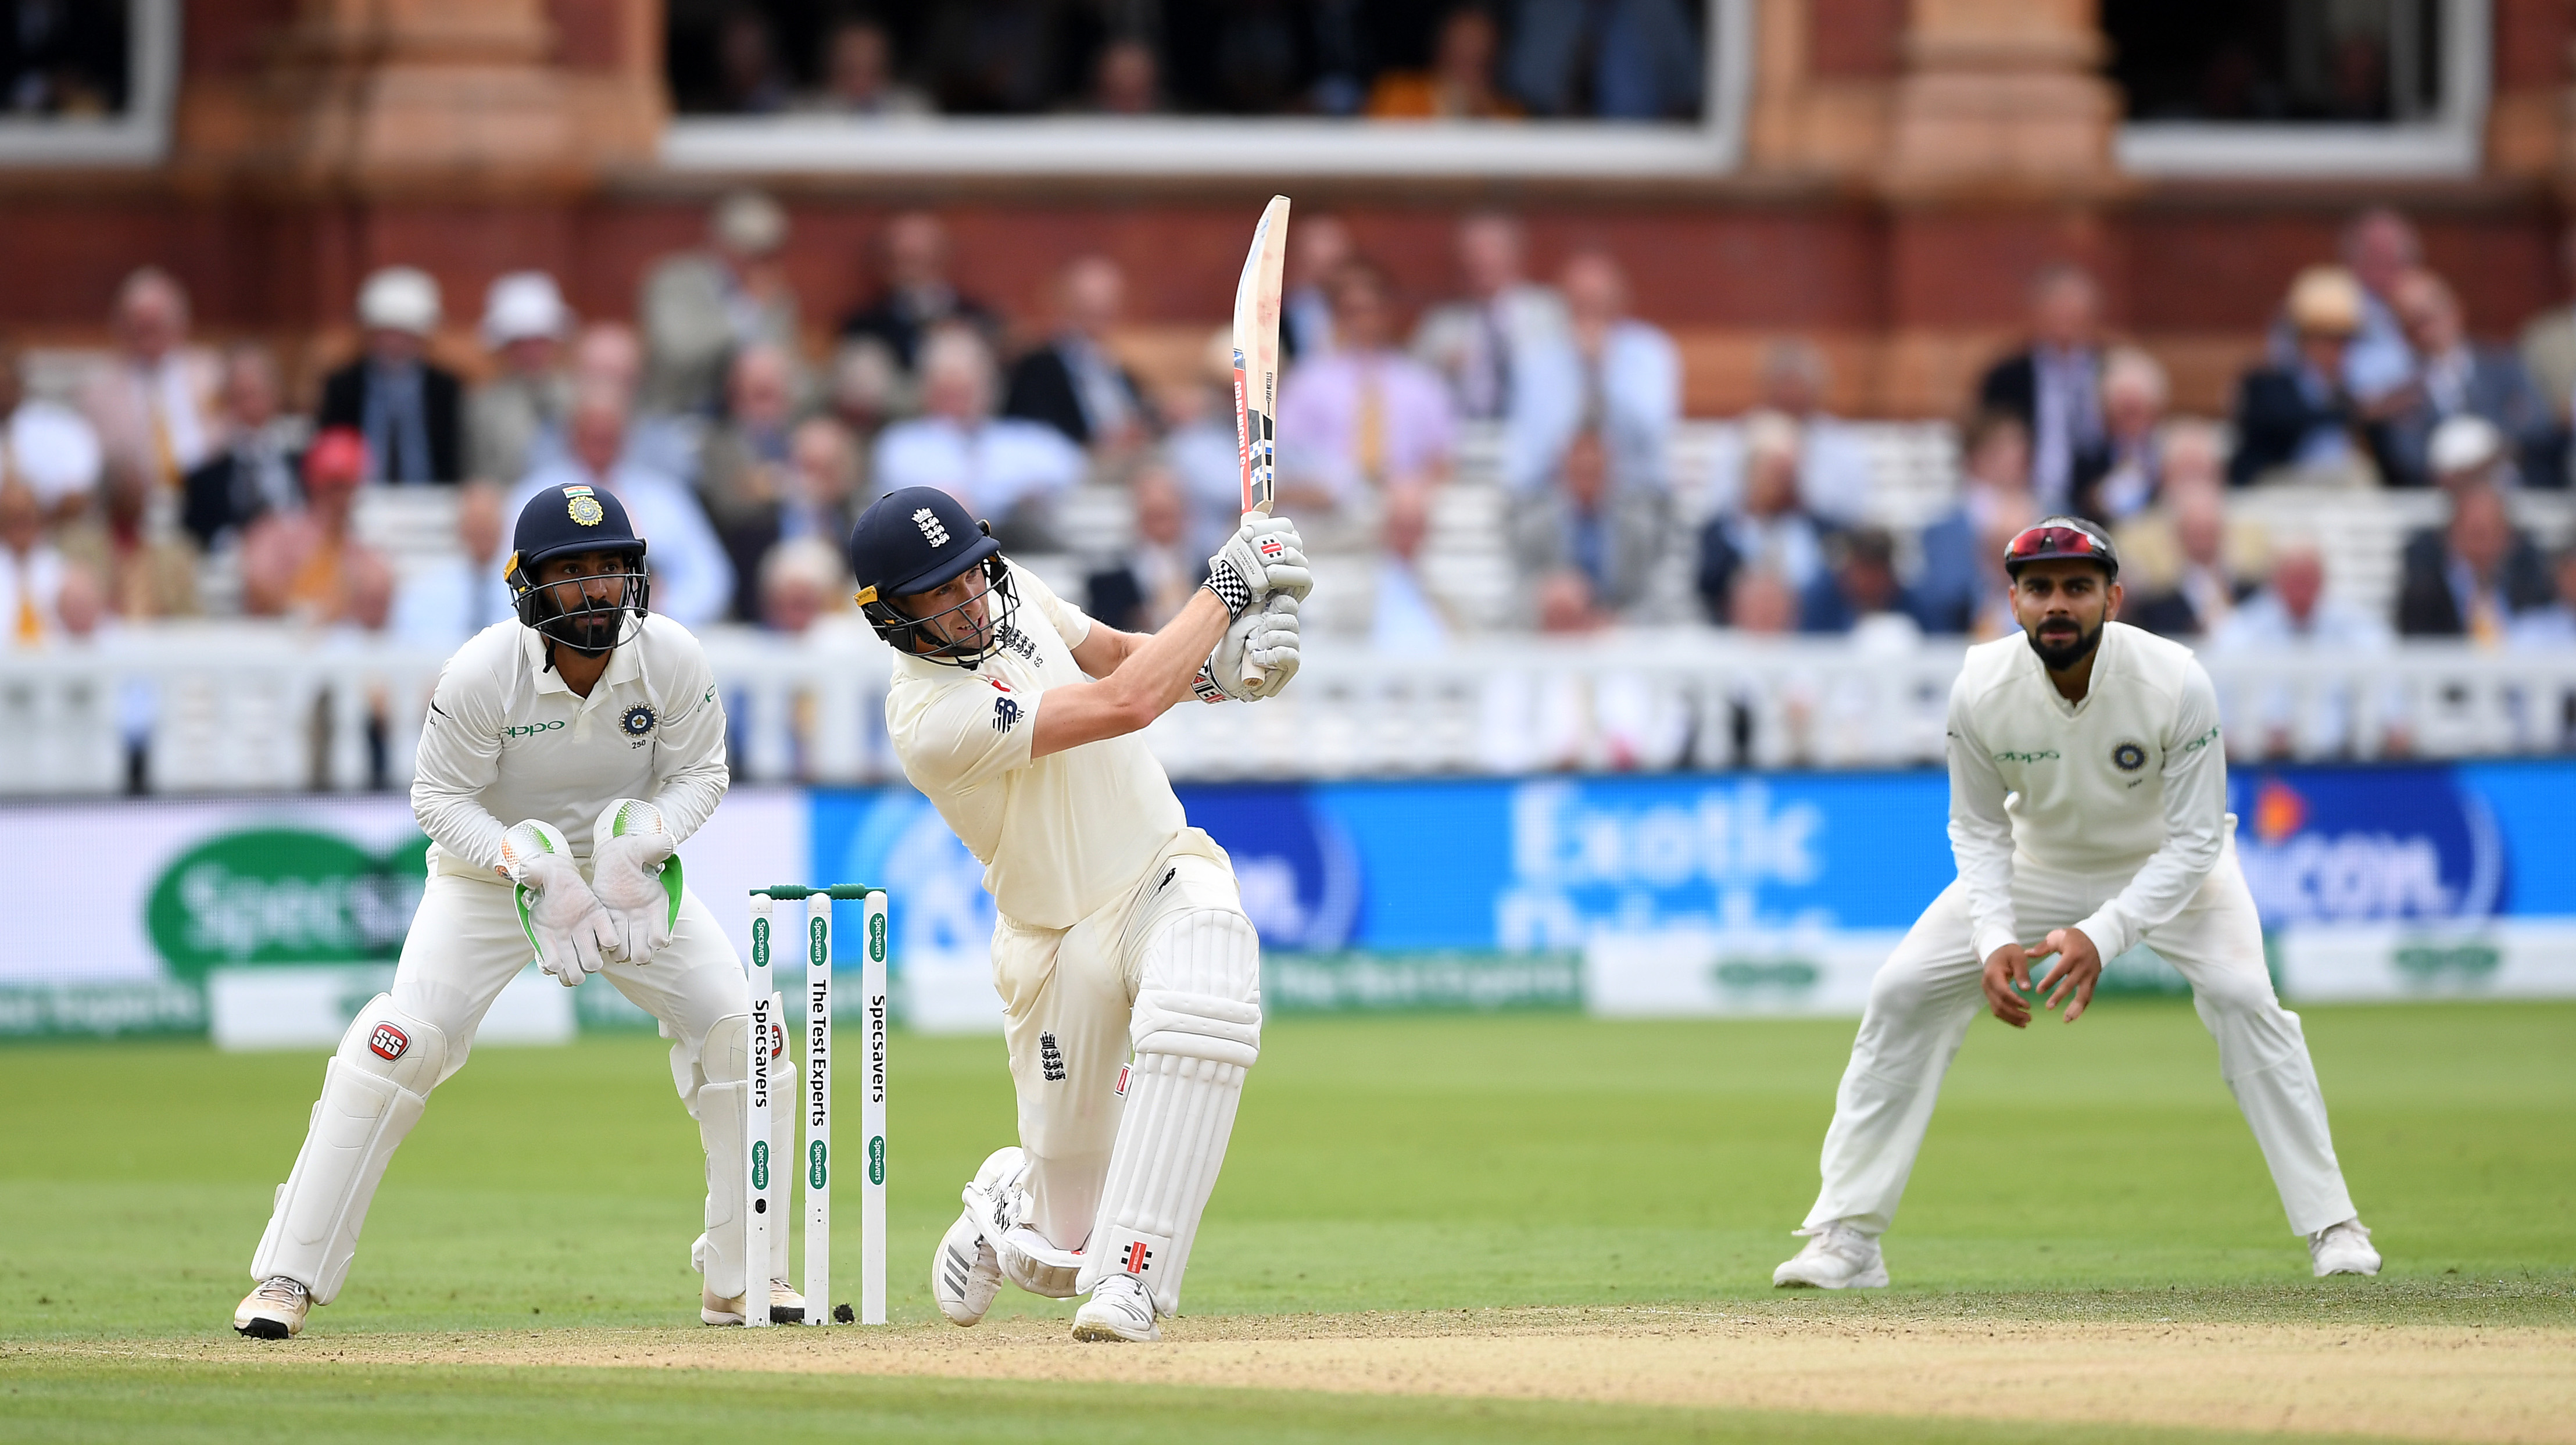 Woakes en route tp his first Test ton. (Getty)